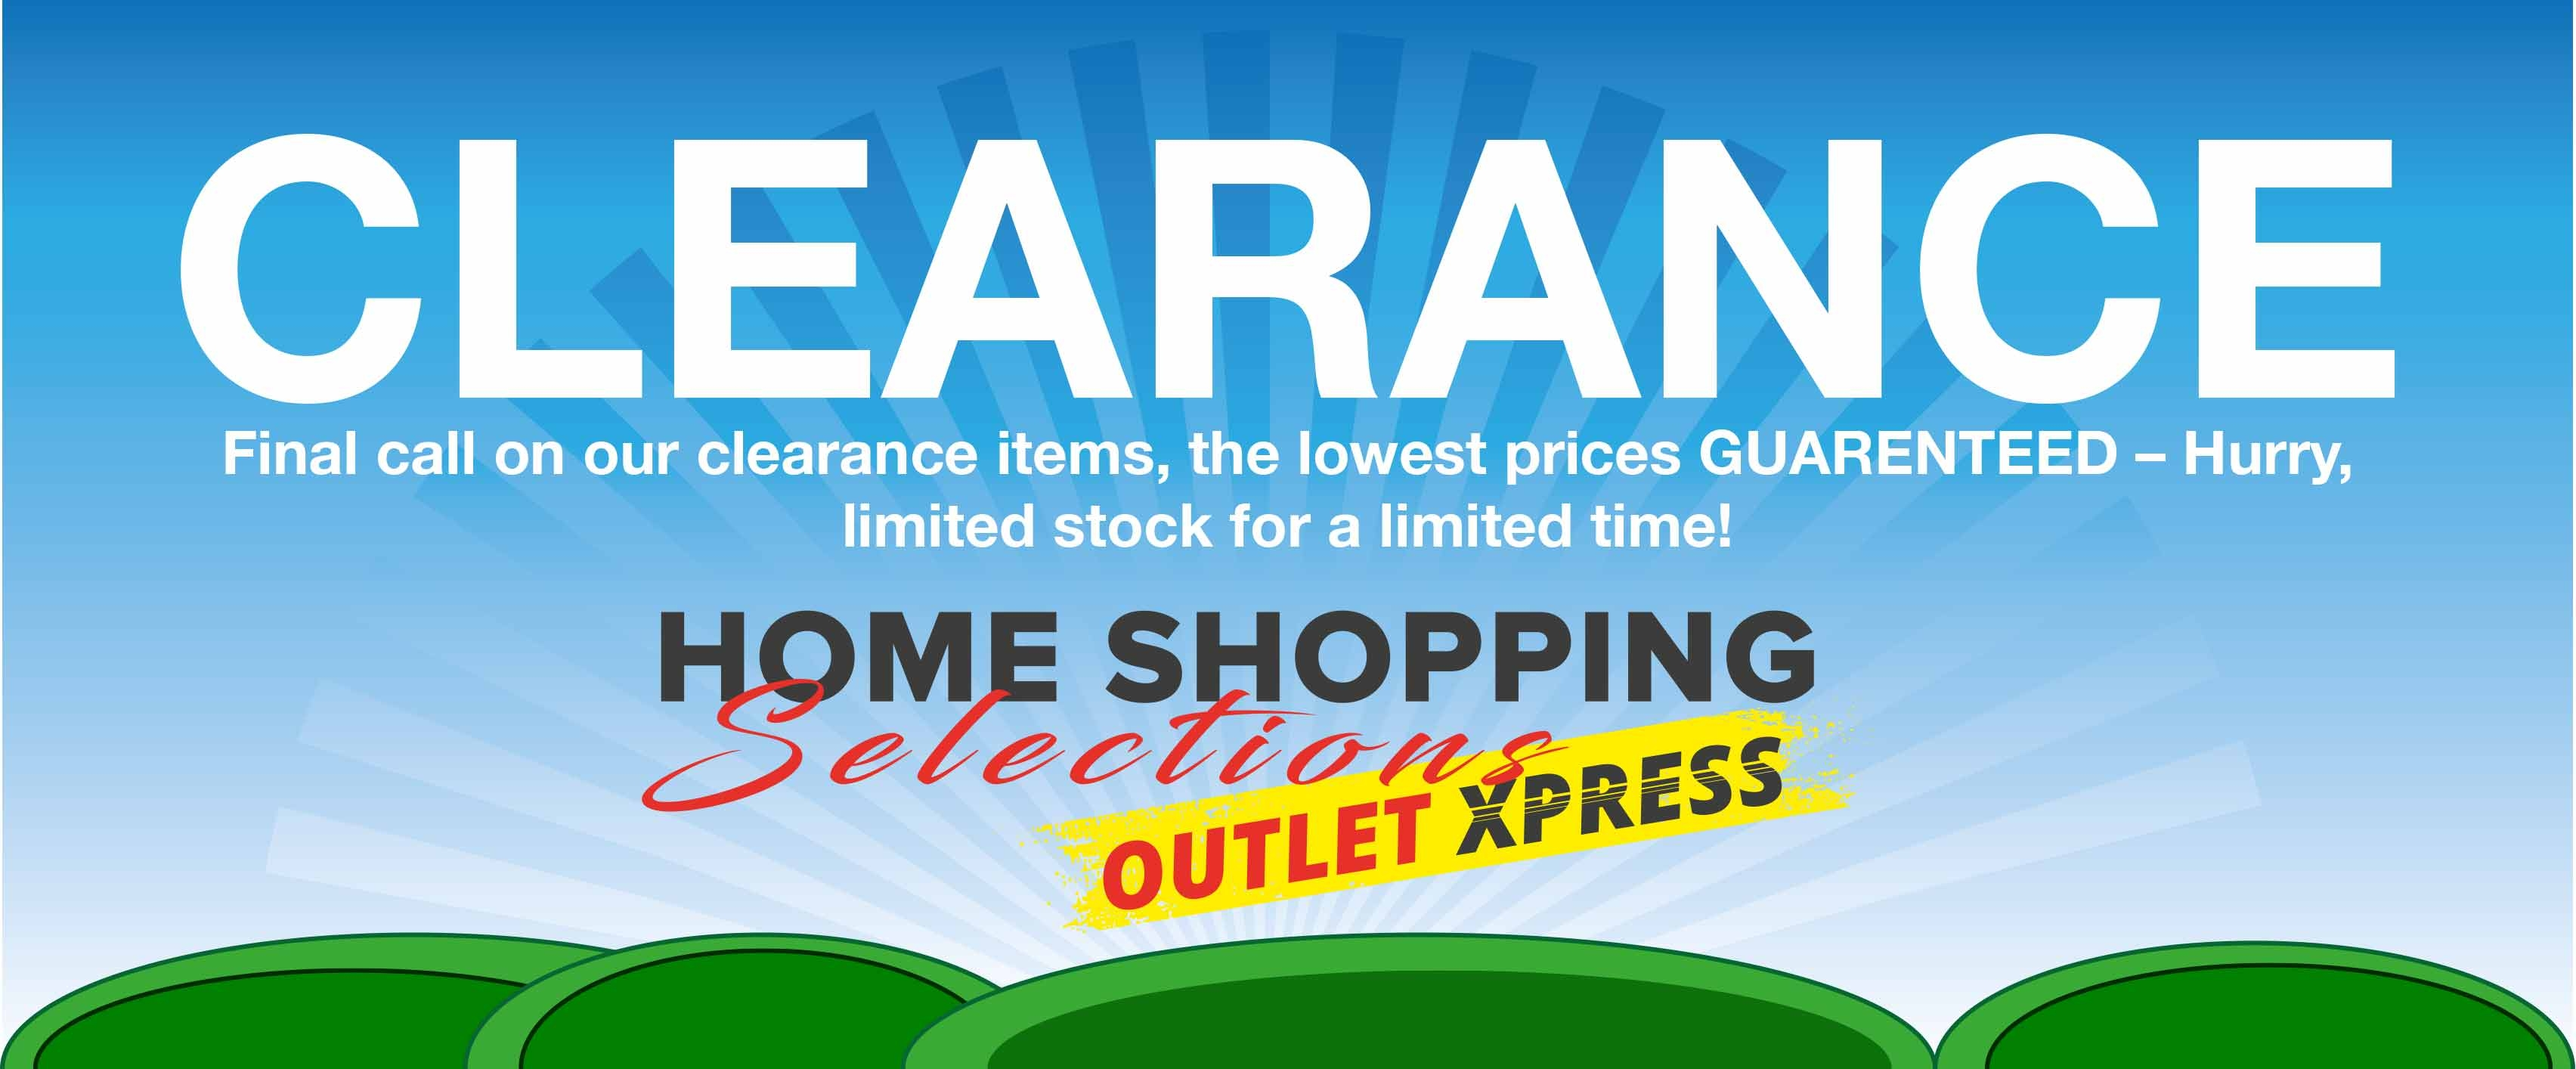 Outlet Xpress Clearance